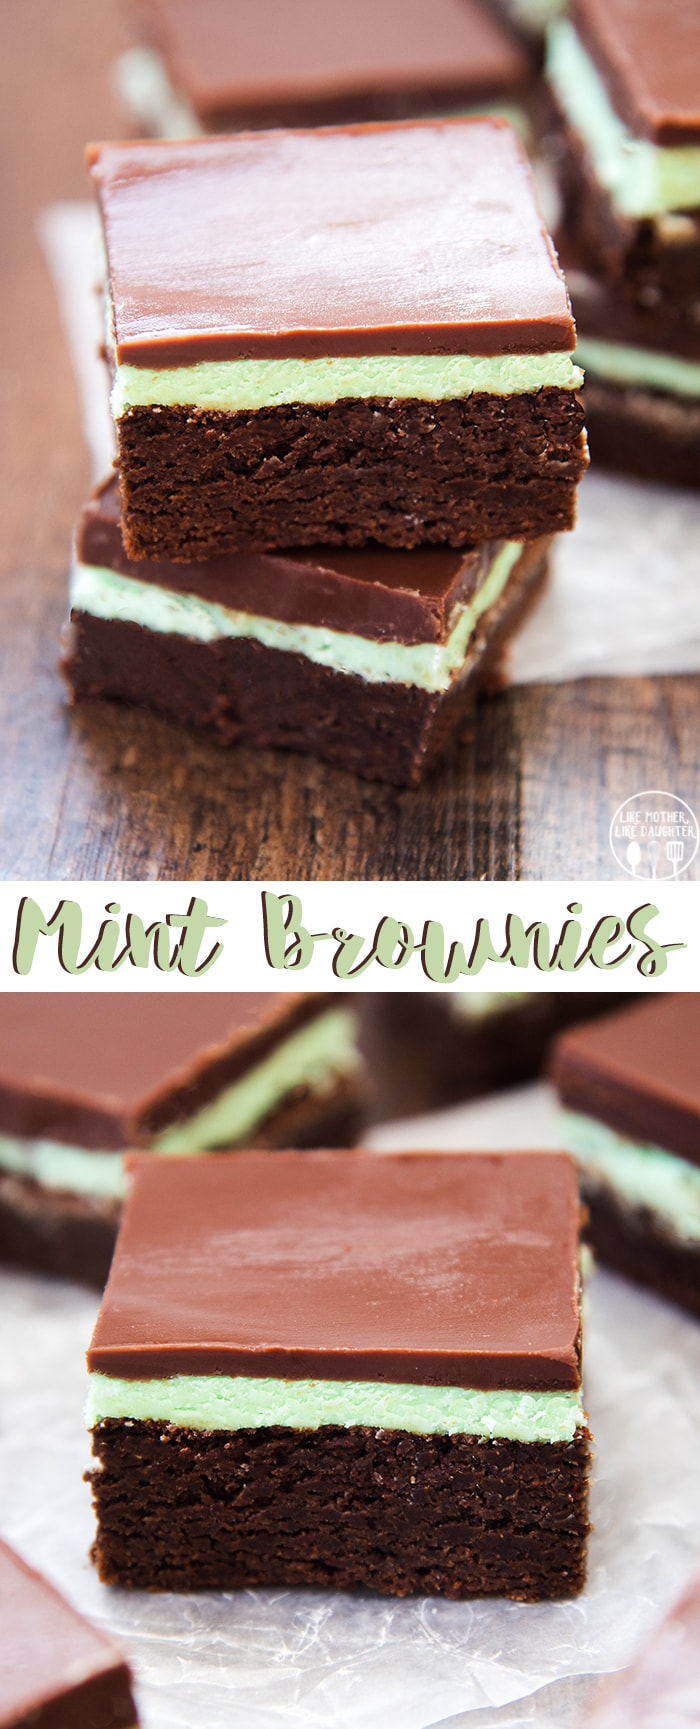 Mint Brownies are a delicious rich homemade chocolate brownie topped with a creamy and cool mint frosting and chocolate ganache.